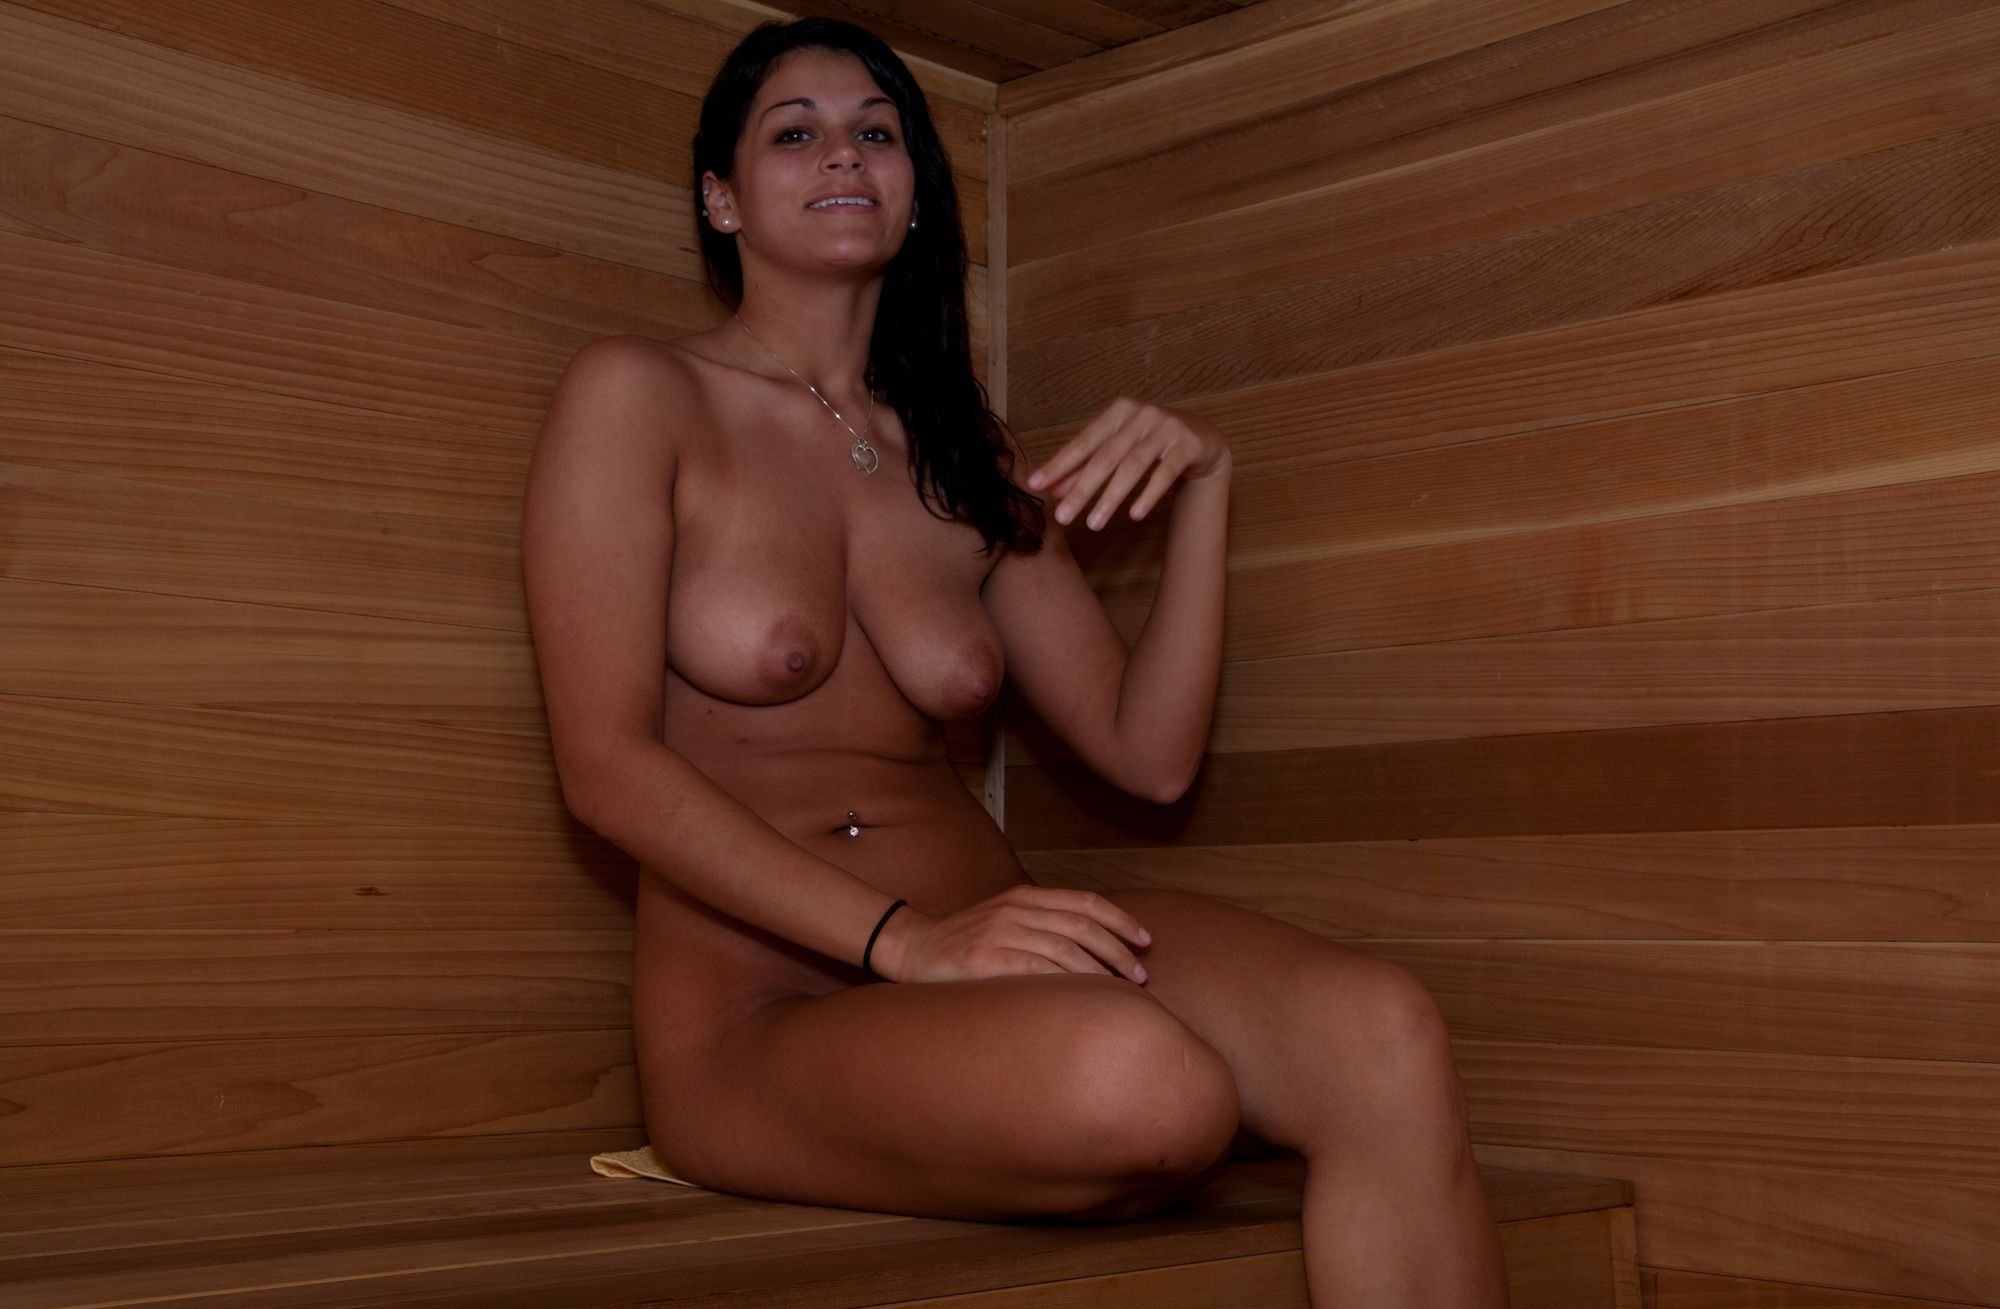 maid-almost-naked-woman-sauna-clubs-east-valley